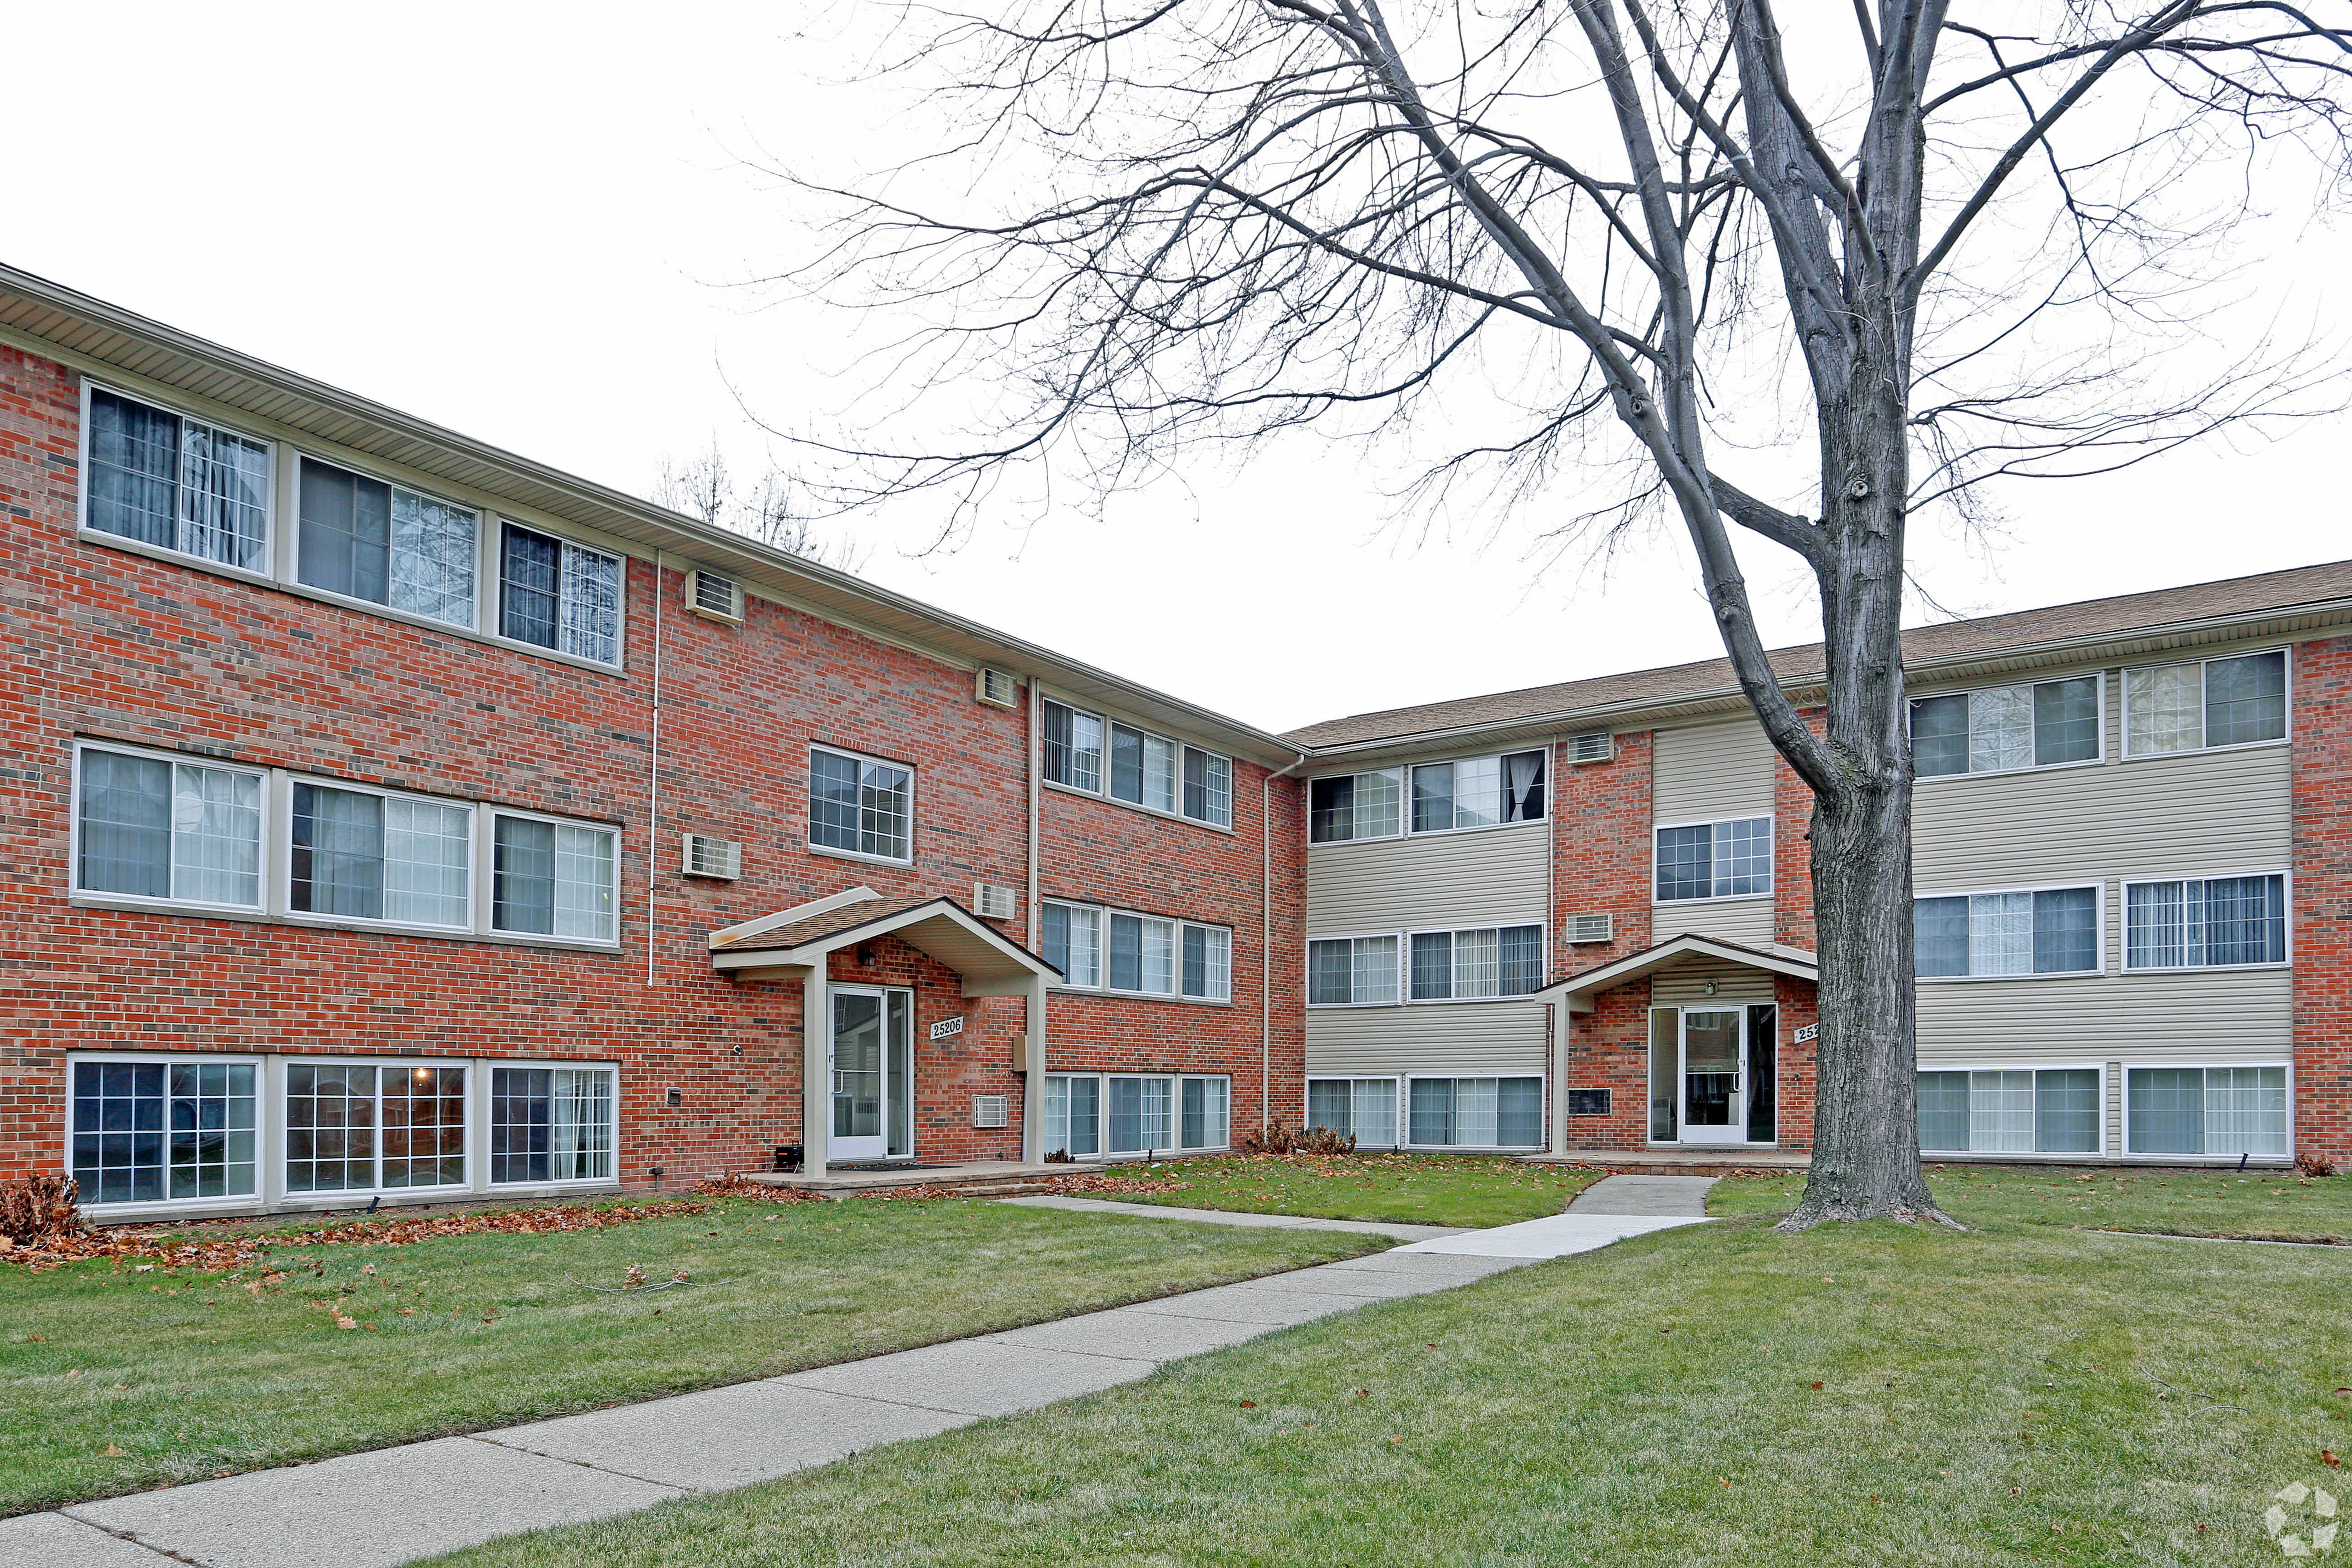 Hoover Square Apartments in Warren, Michigan offers a naturally well-lit entryway